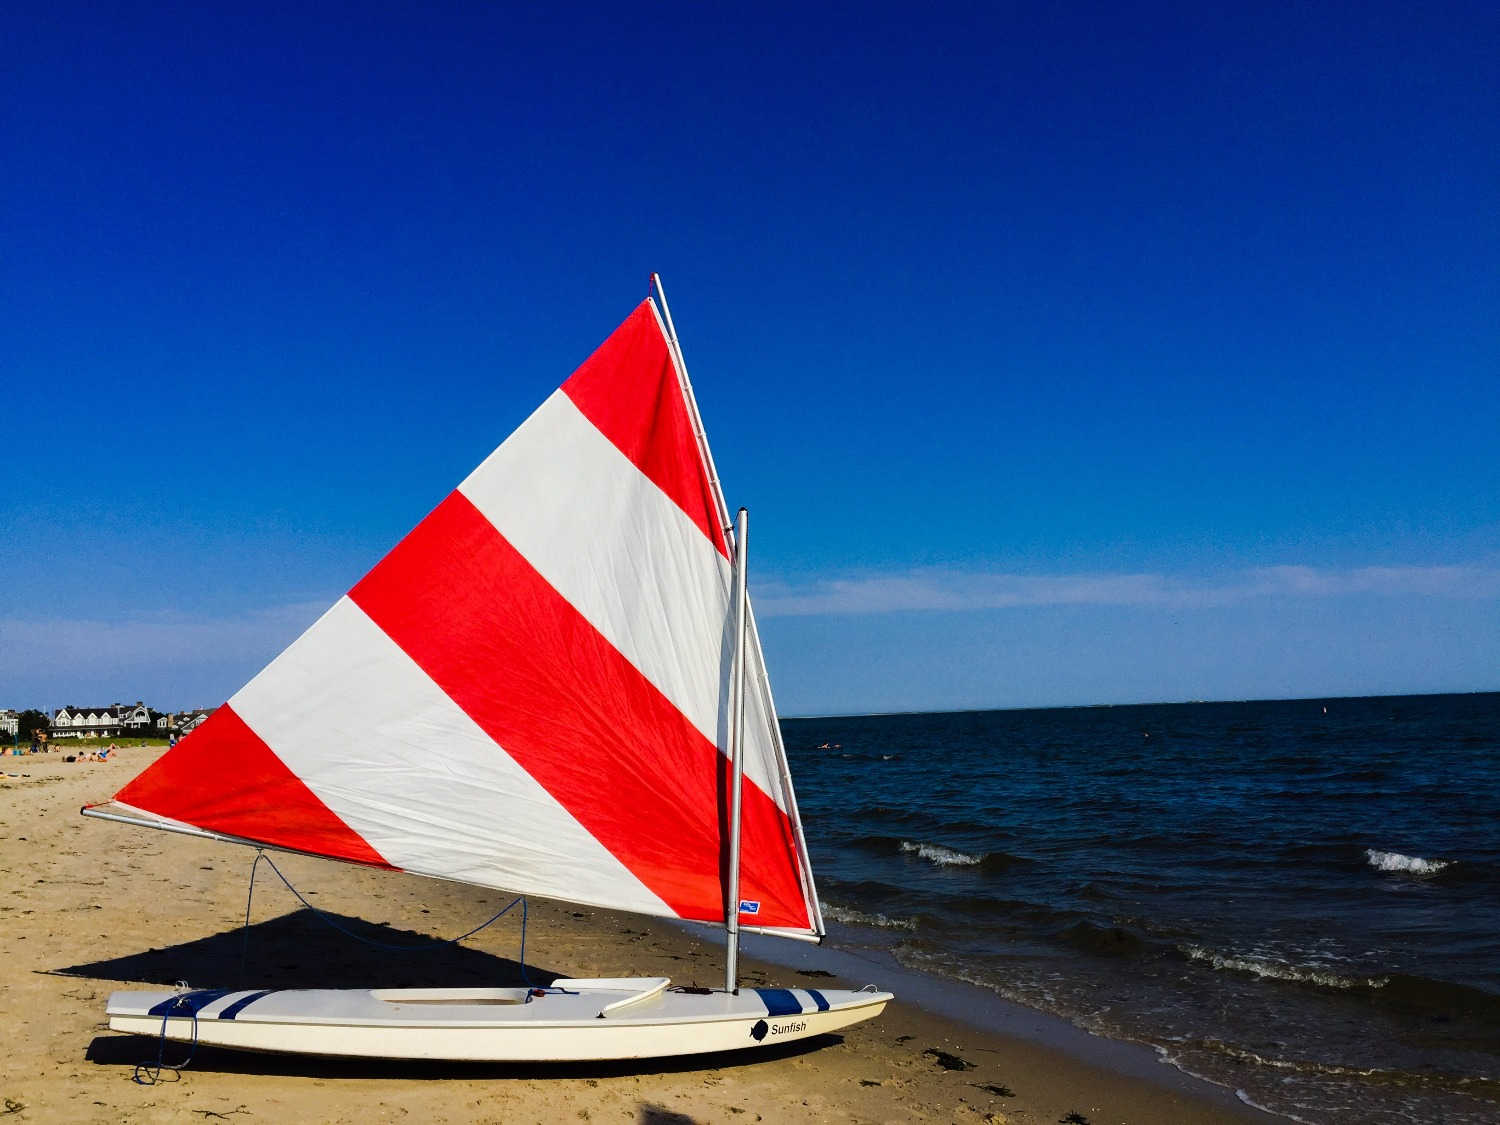 sunfish-rentals-chatham-sailboats